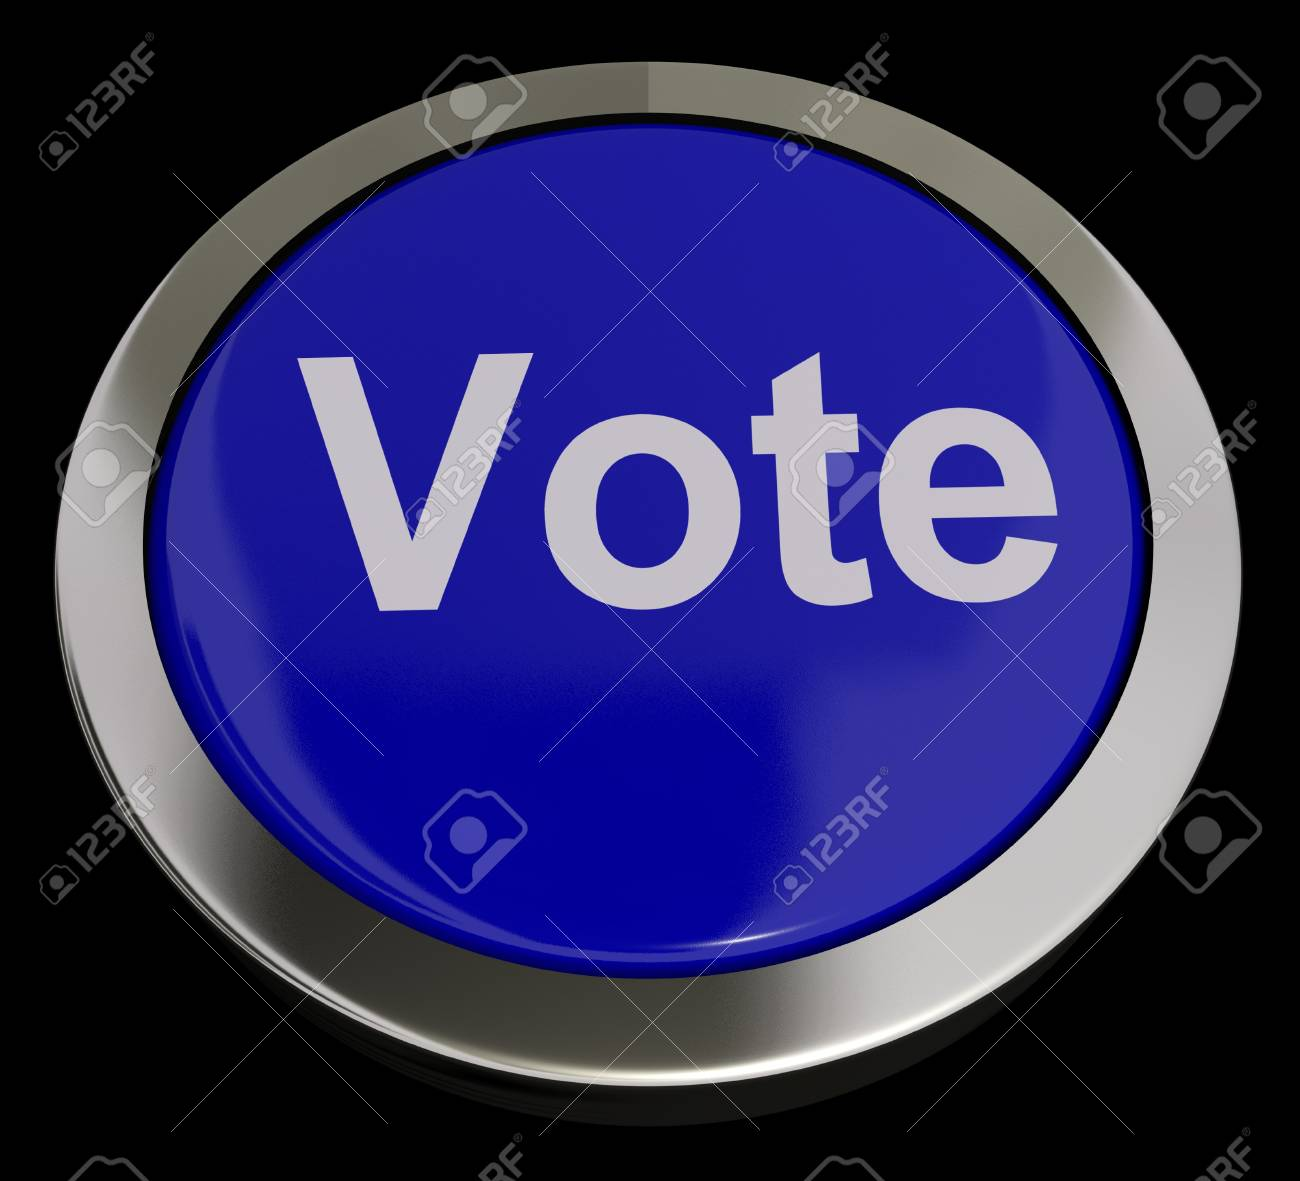 Vote Button In Blue Showing Options Or Choice Stock Photo - 13480723